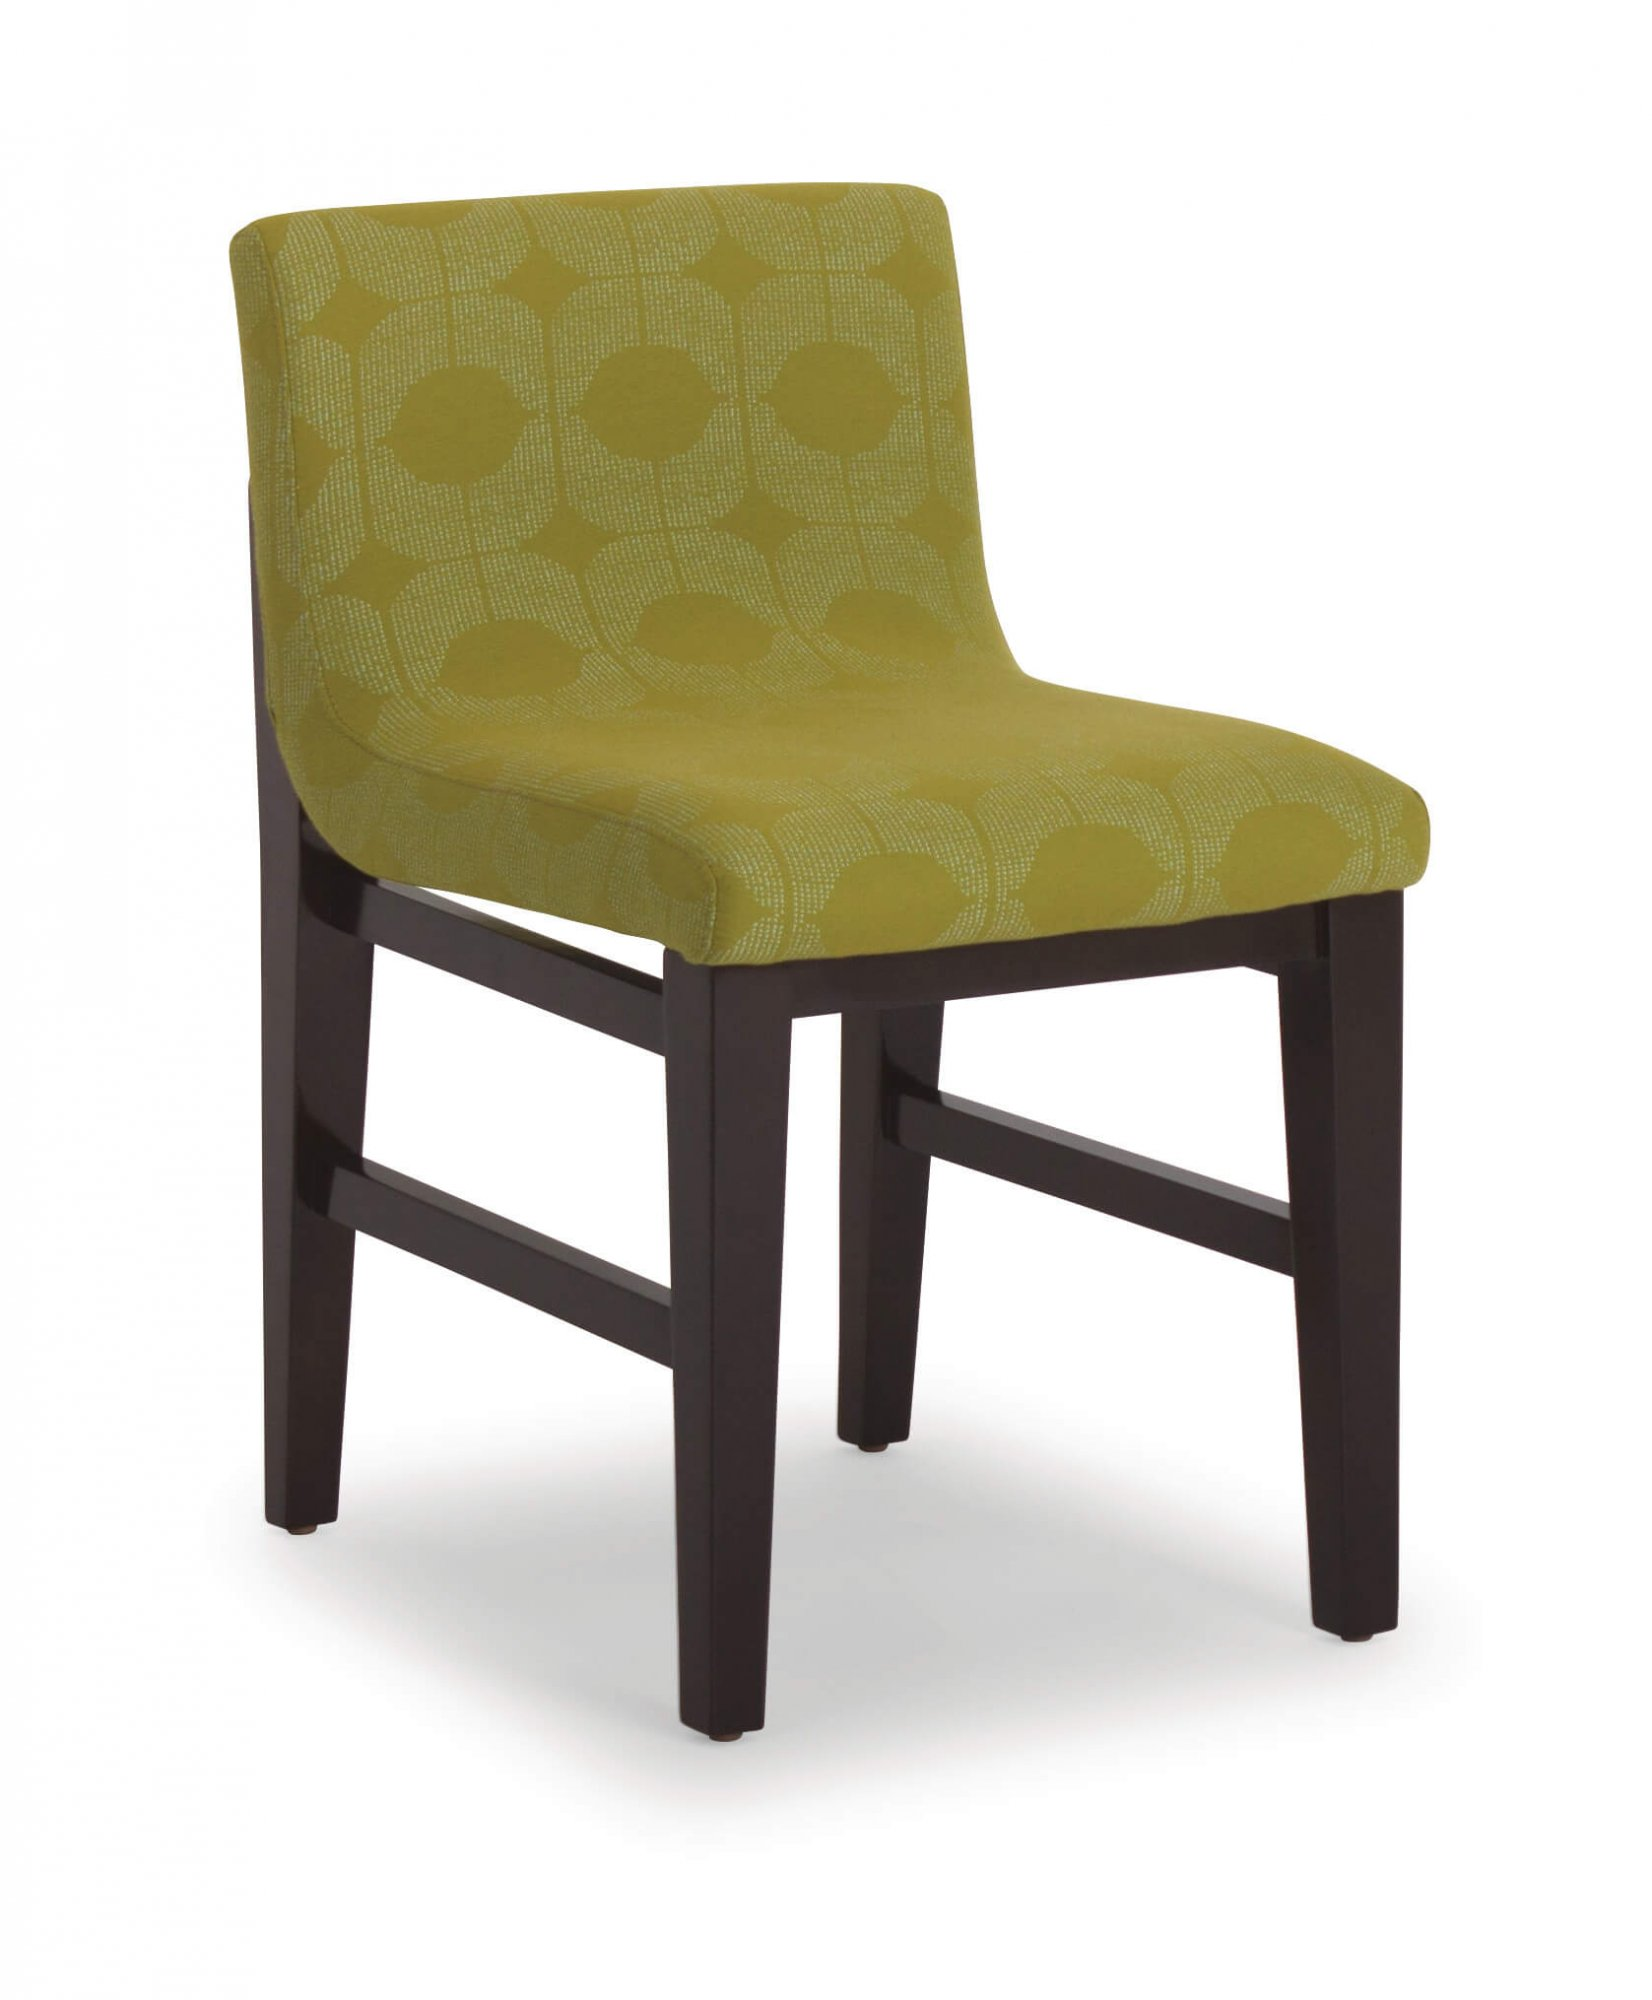 Photo Features Gig Armless Side Chair CA914 19. Share Via Email Download A  High Resolution Image